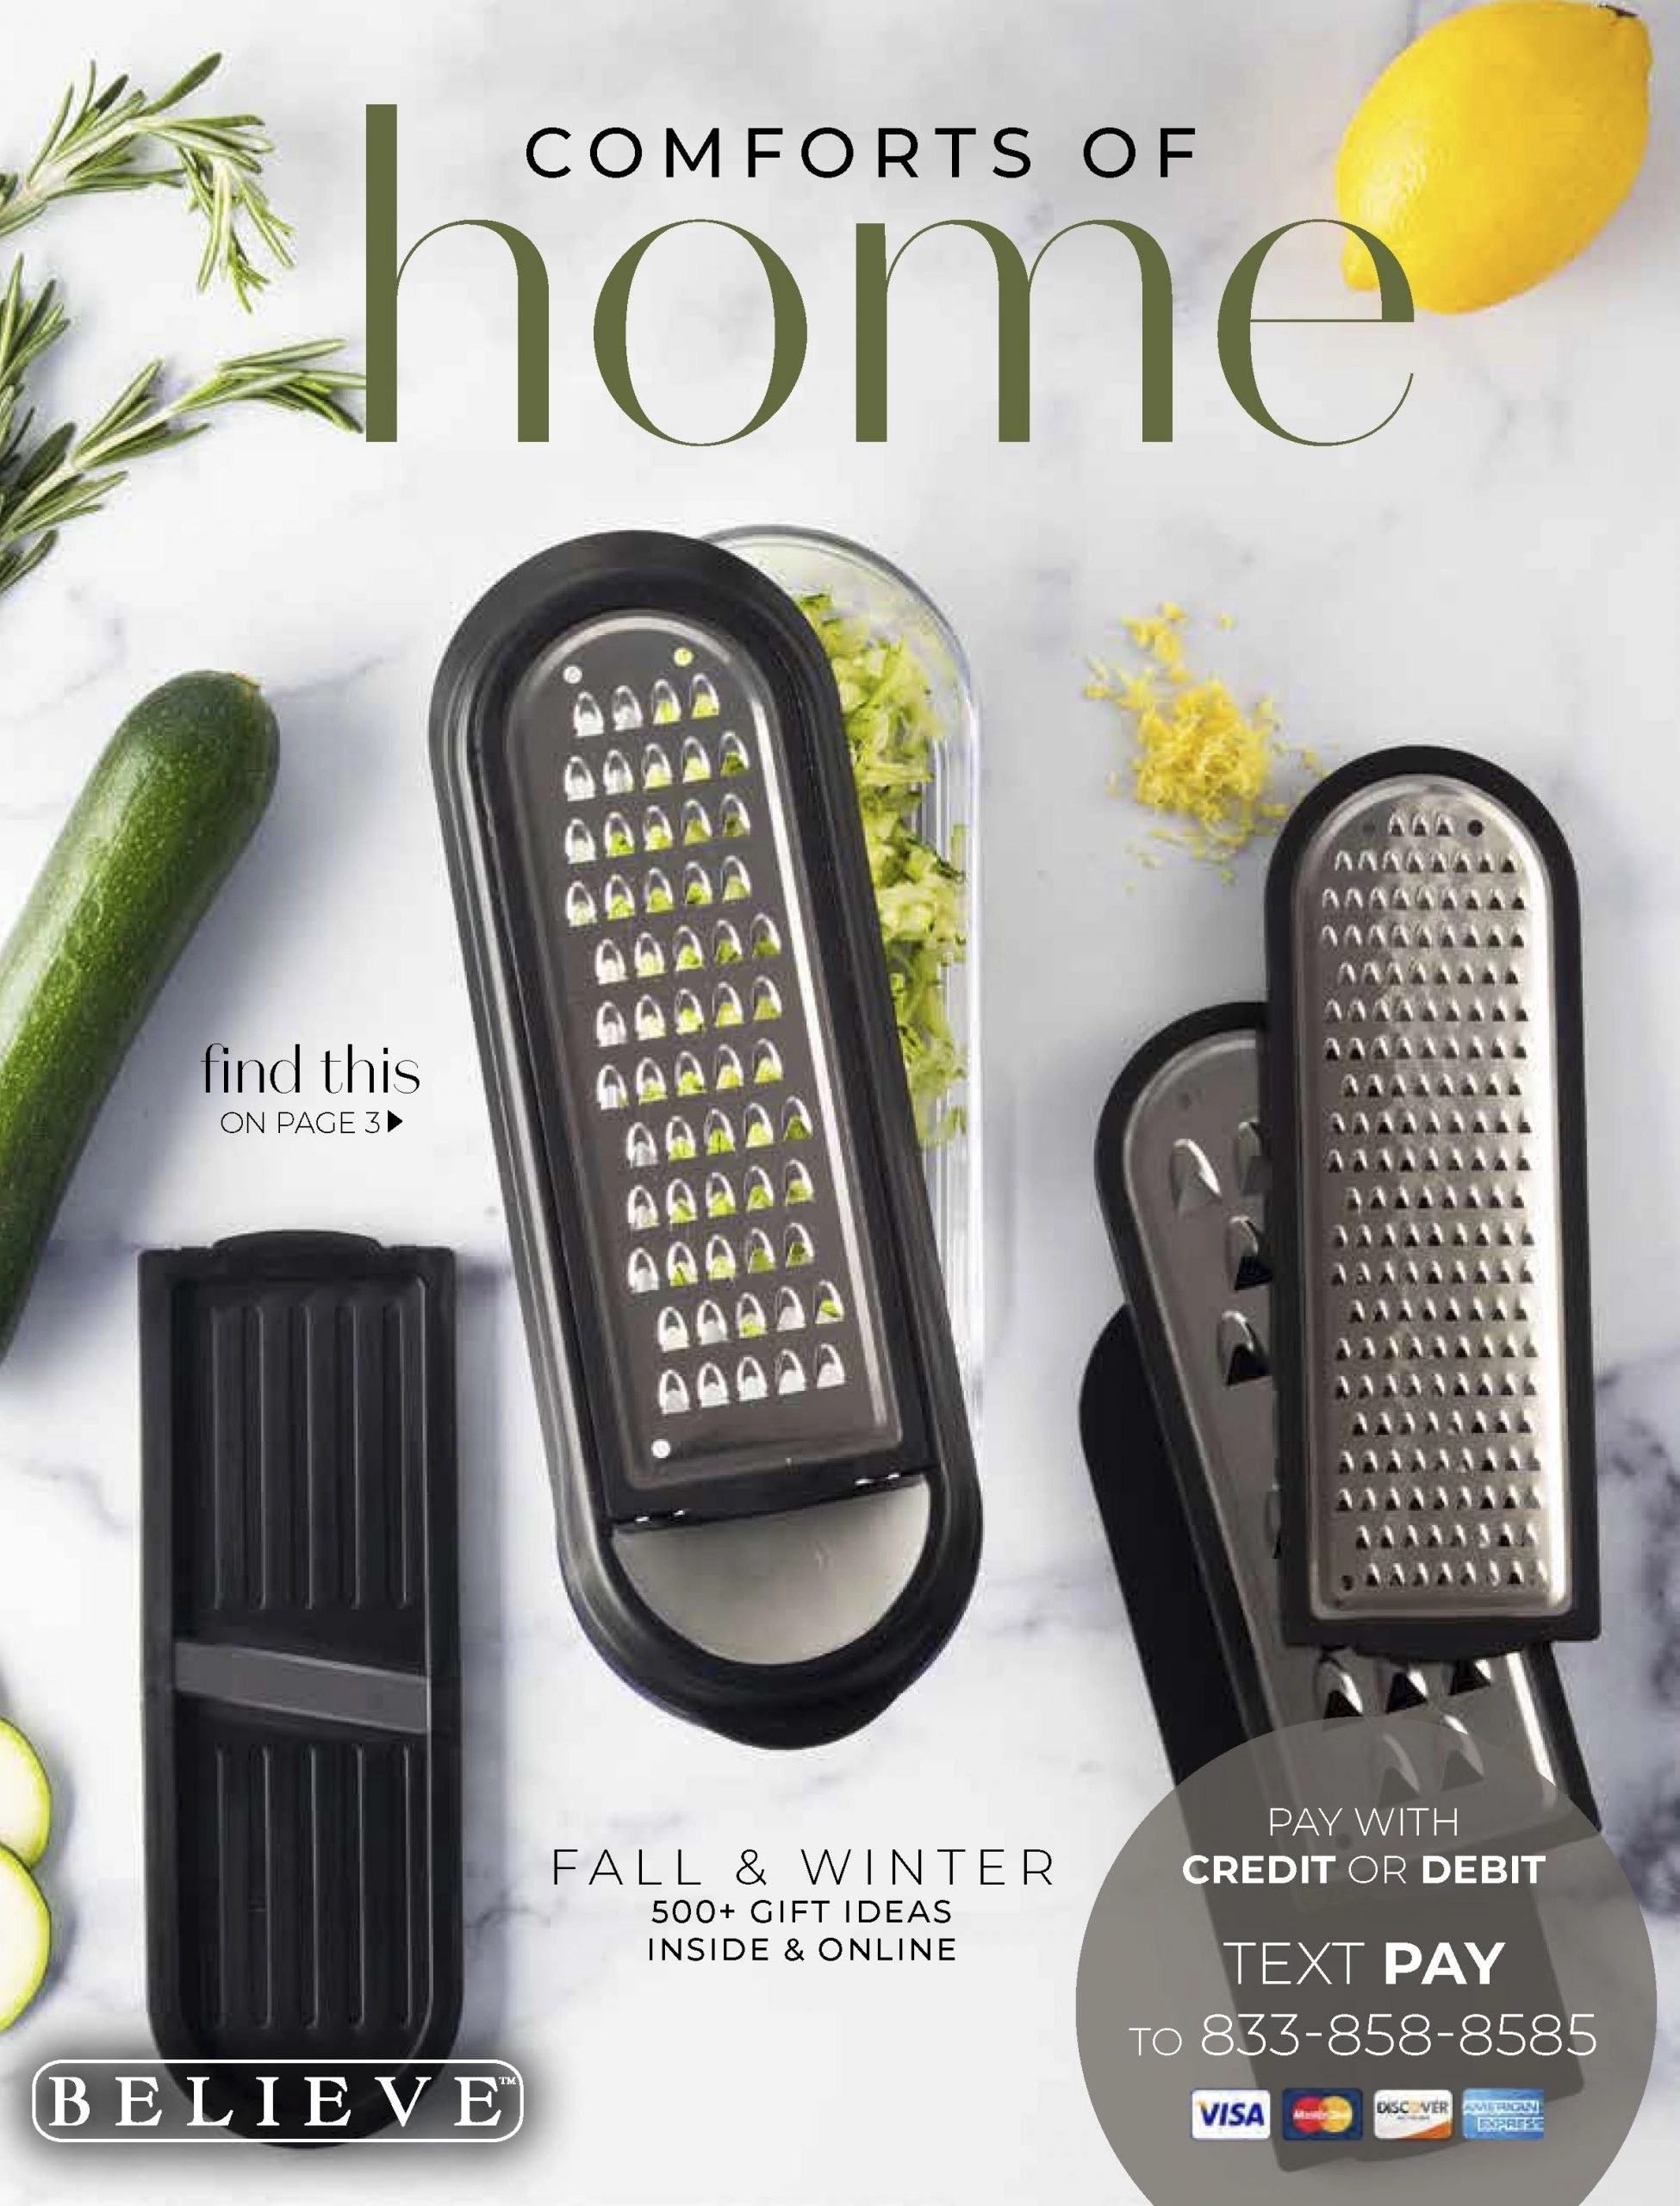 Believe Comforts of Home Fall Catalog_Page_01